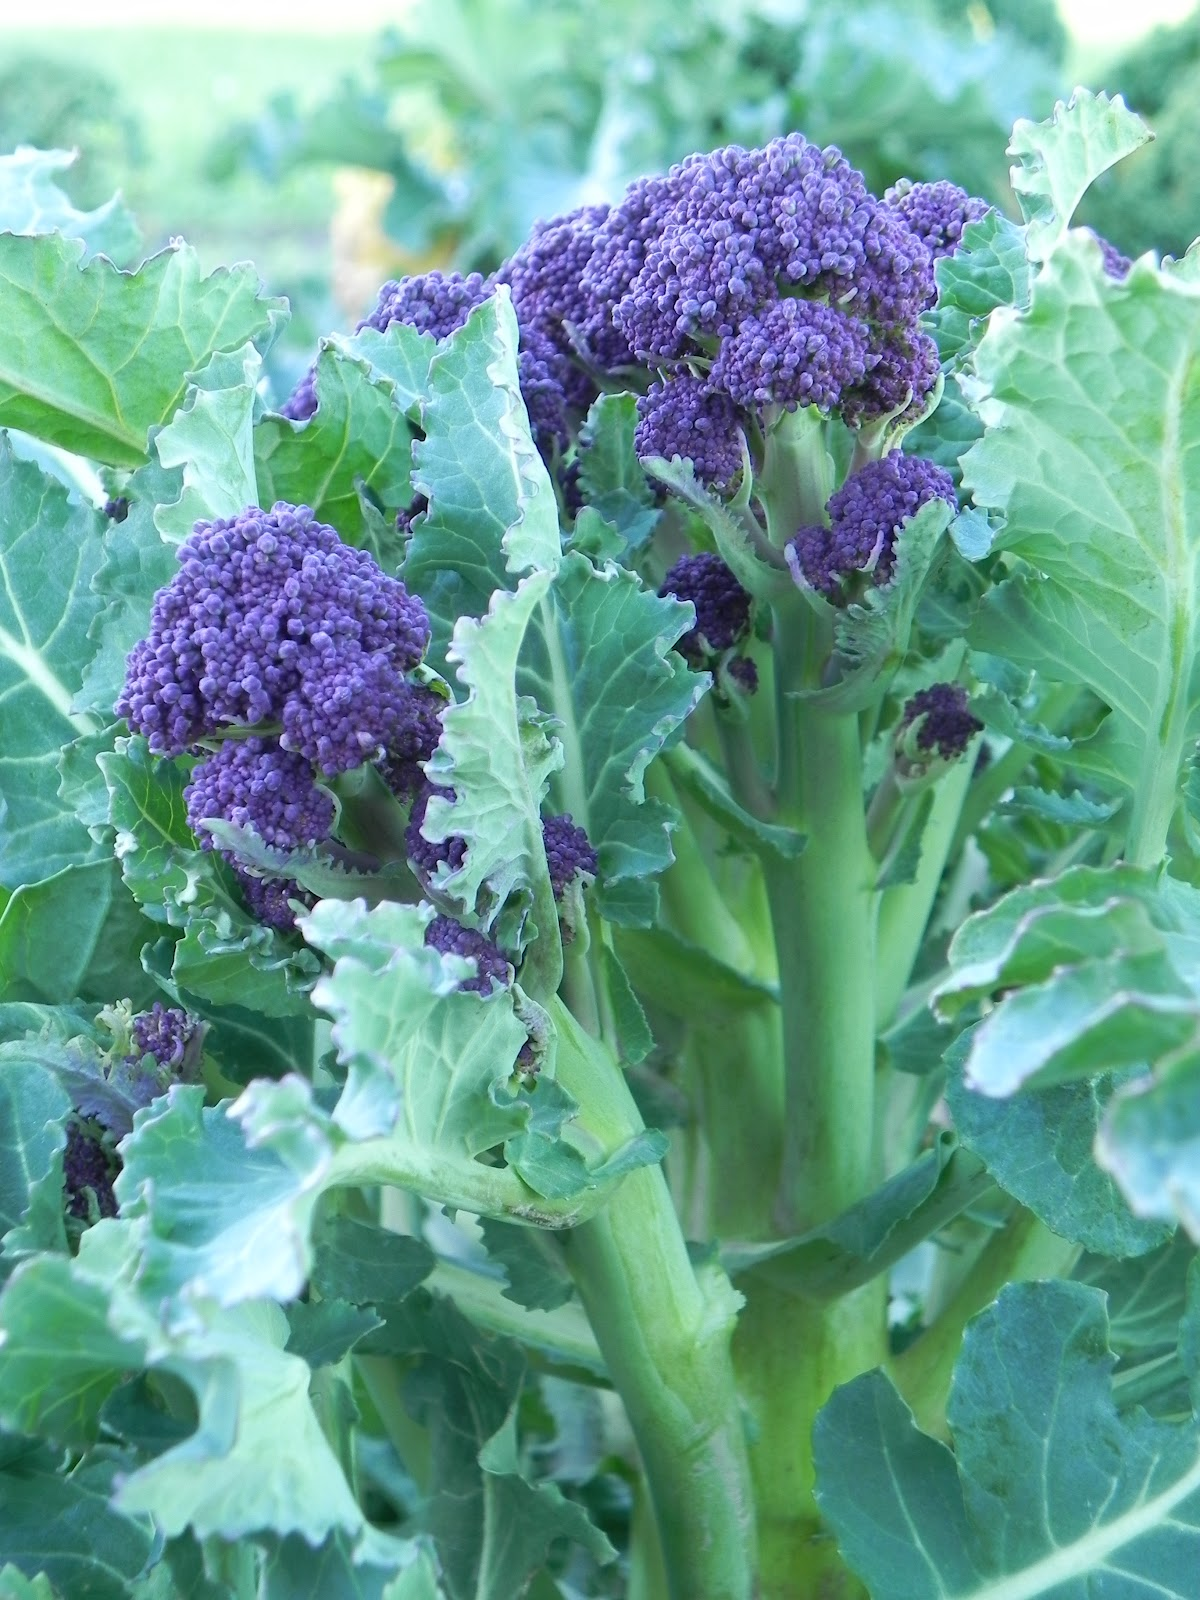 Overwinter Purple Sprouting Broccoli Seeds Available